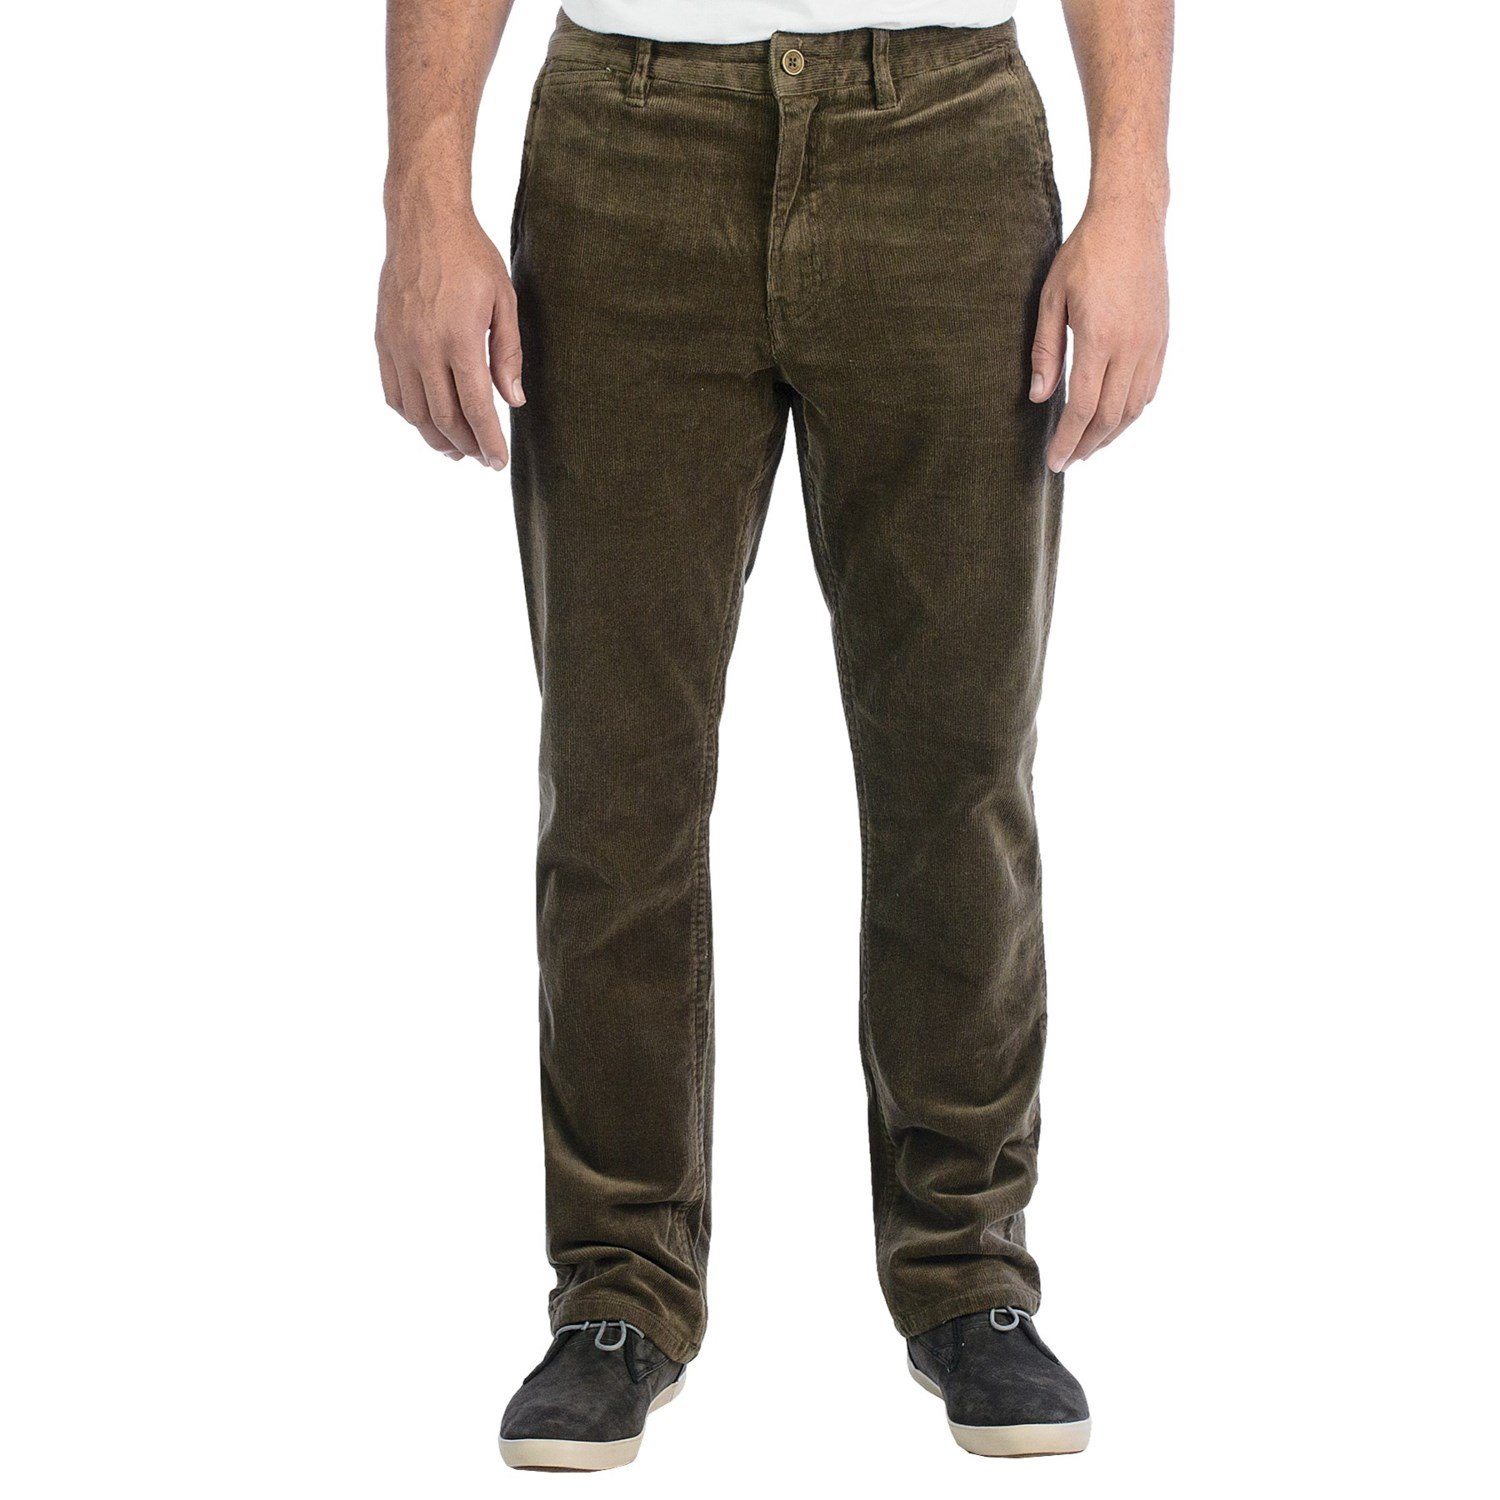 silver point guys Shop silver point men's clothing from cafepress find great designs on t-shirts, hoodies, pajamas, sweatshirts, boxer shorts and more free returns 100% satisfaction guarantee fast shipping.